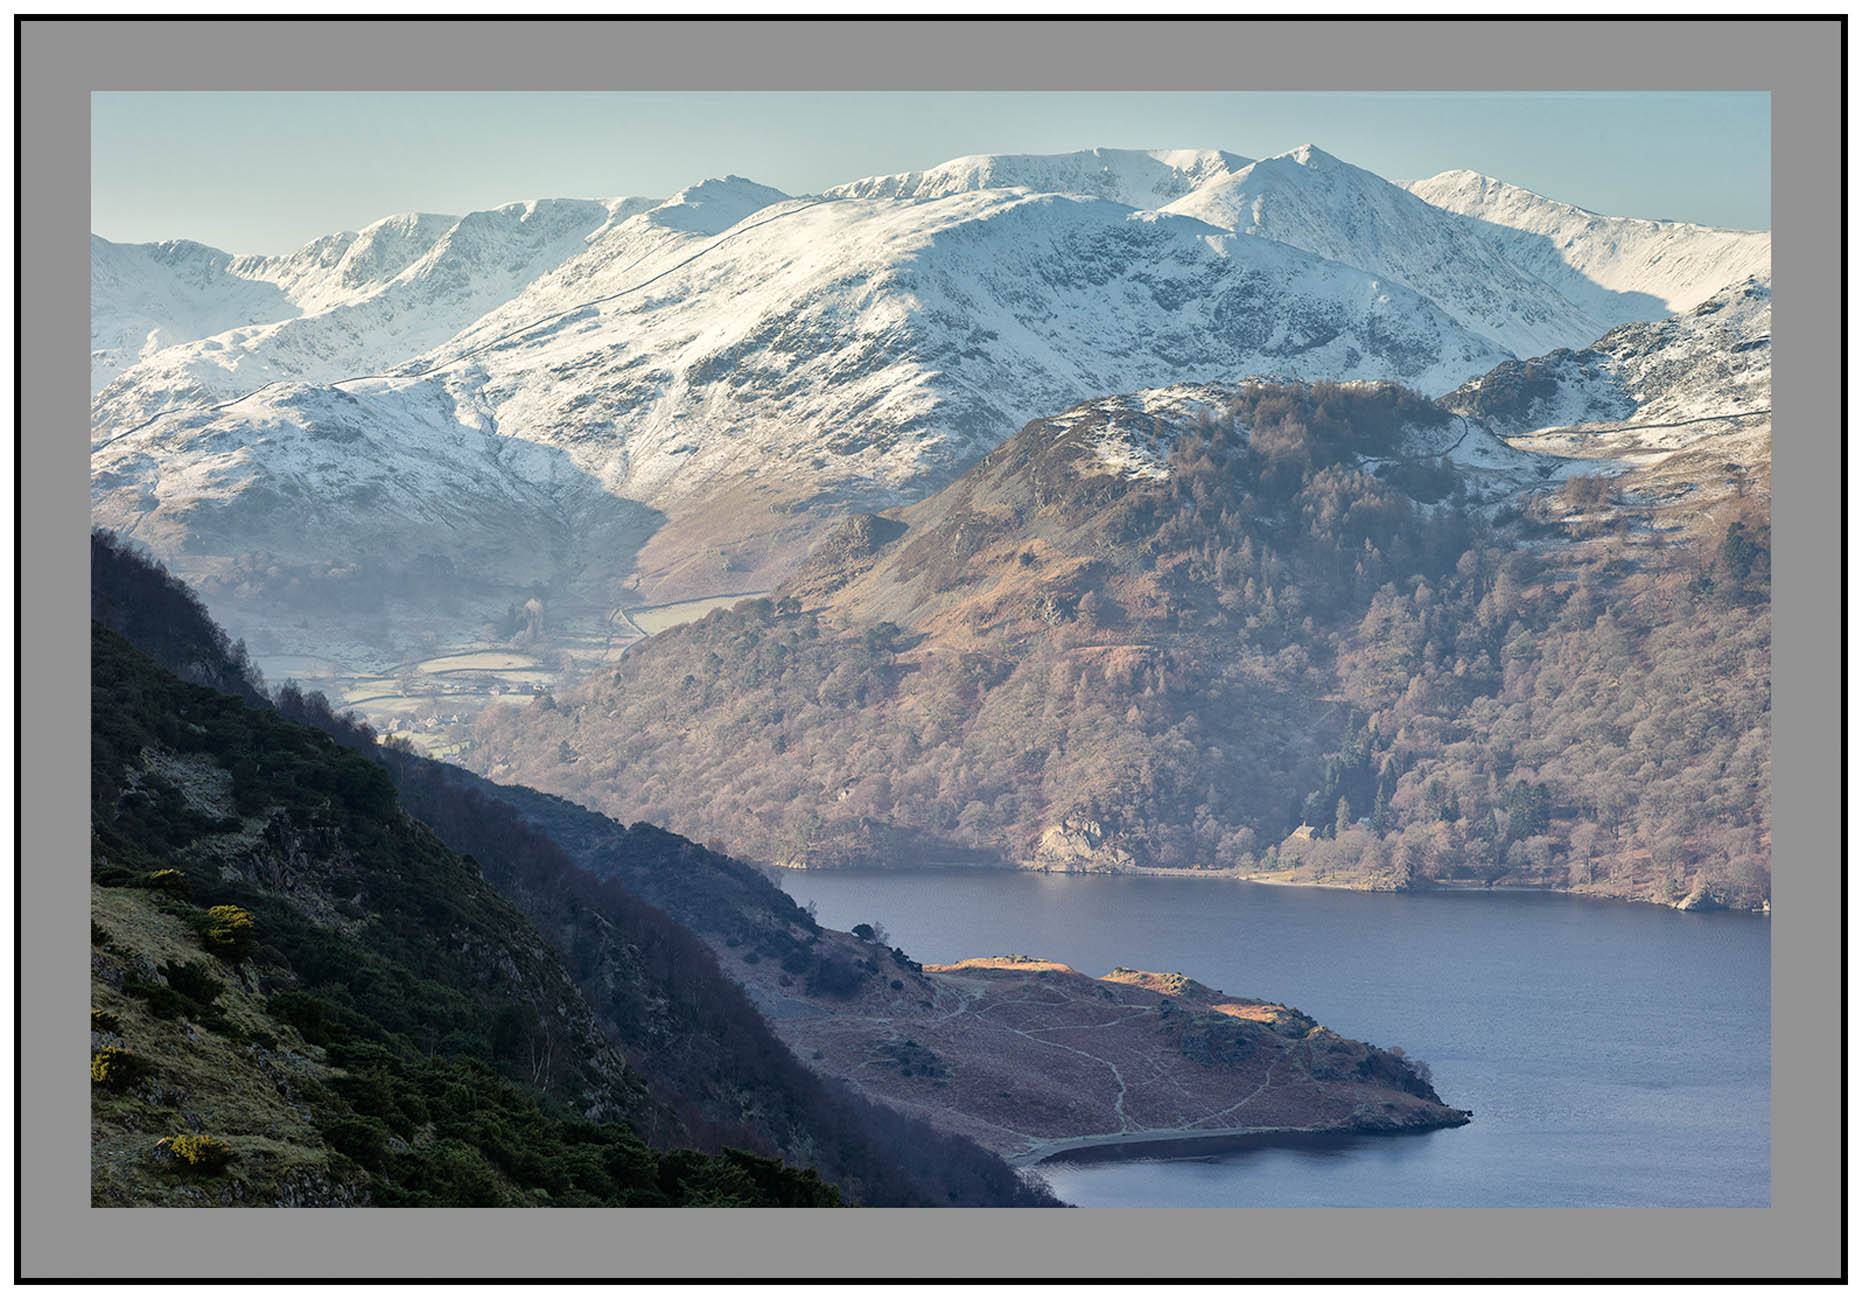 S2015436 Glenridding and the snow capped Helvellyn Massif across Ullswater from Long Crag